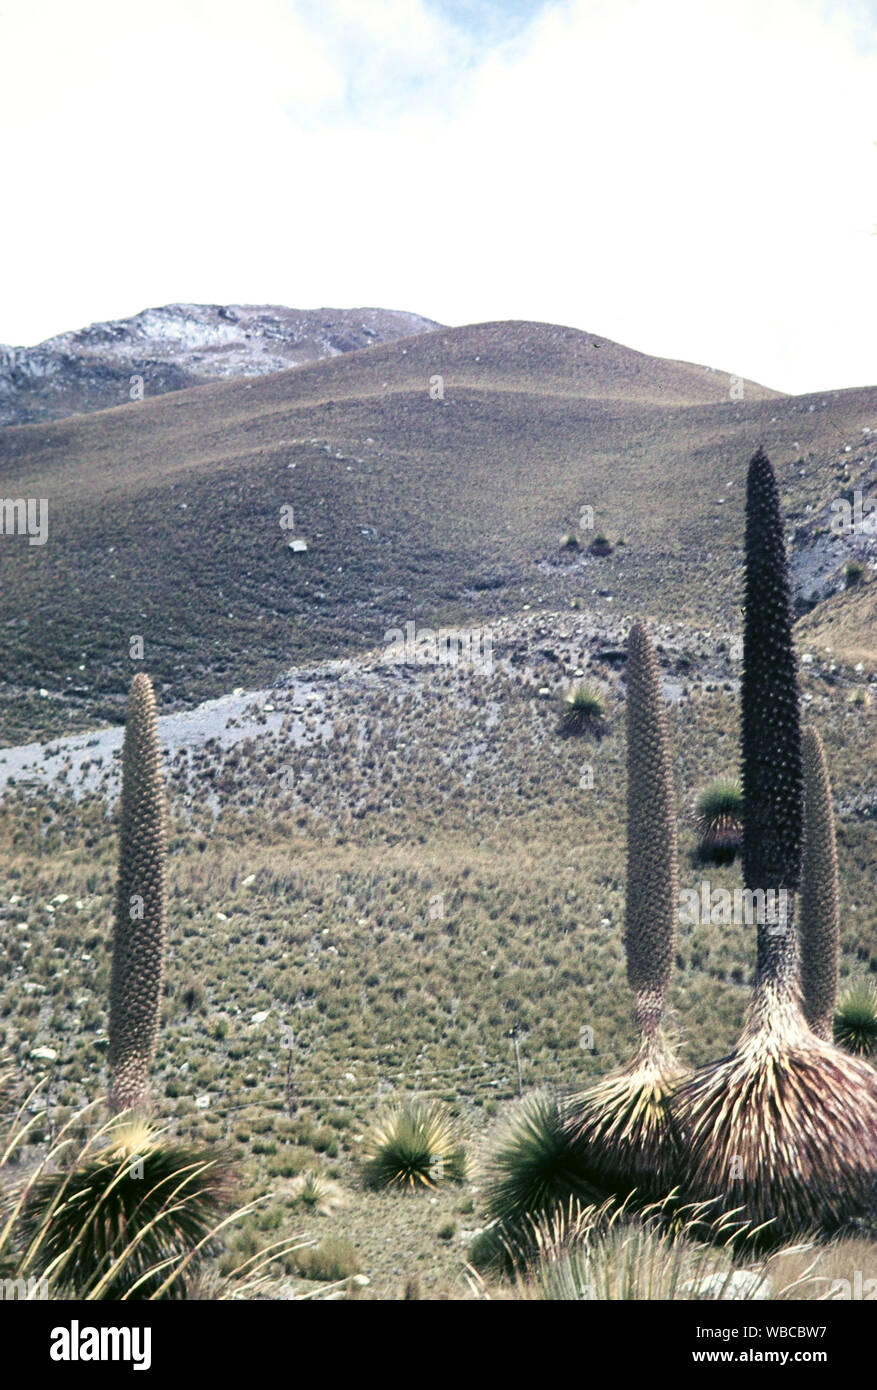 Noch verschlossene Puya Raimondii, Bromeliengewächs, beheimatet in Peru, 1960er Jahre. Still closed Puya Raimondii, bromeliad at Peru, 1960s. Stock Photo